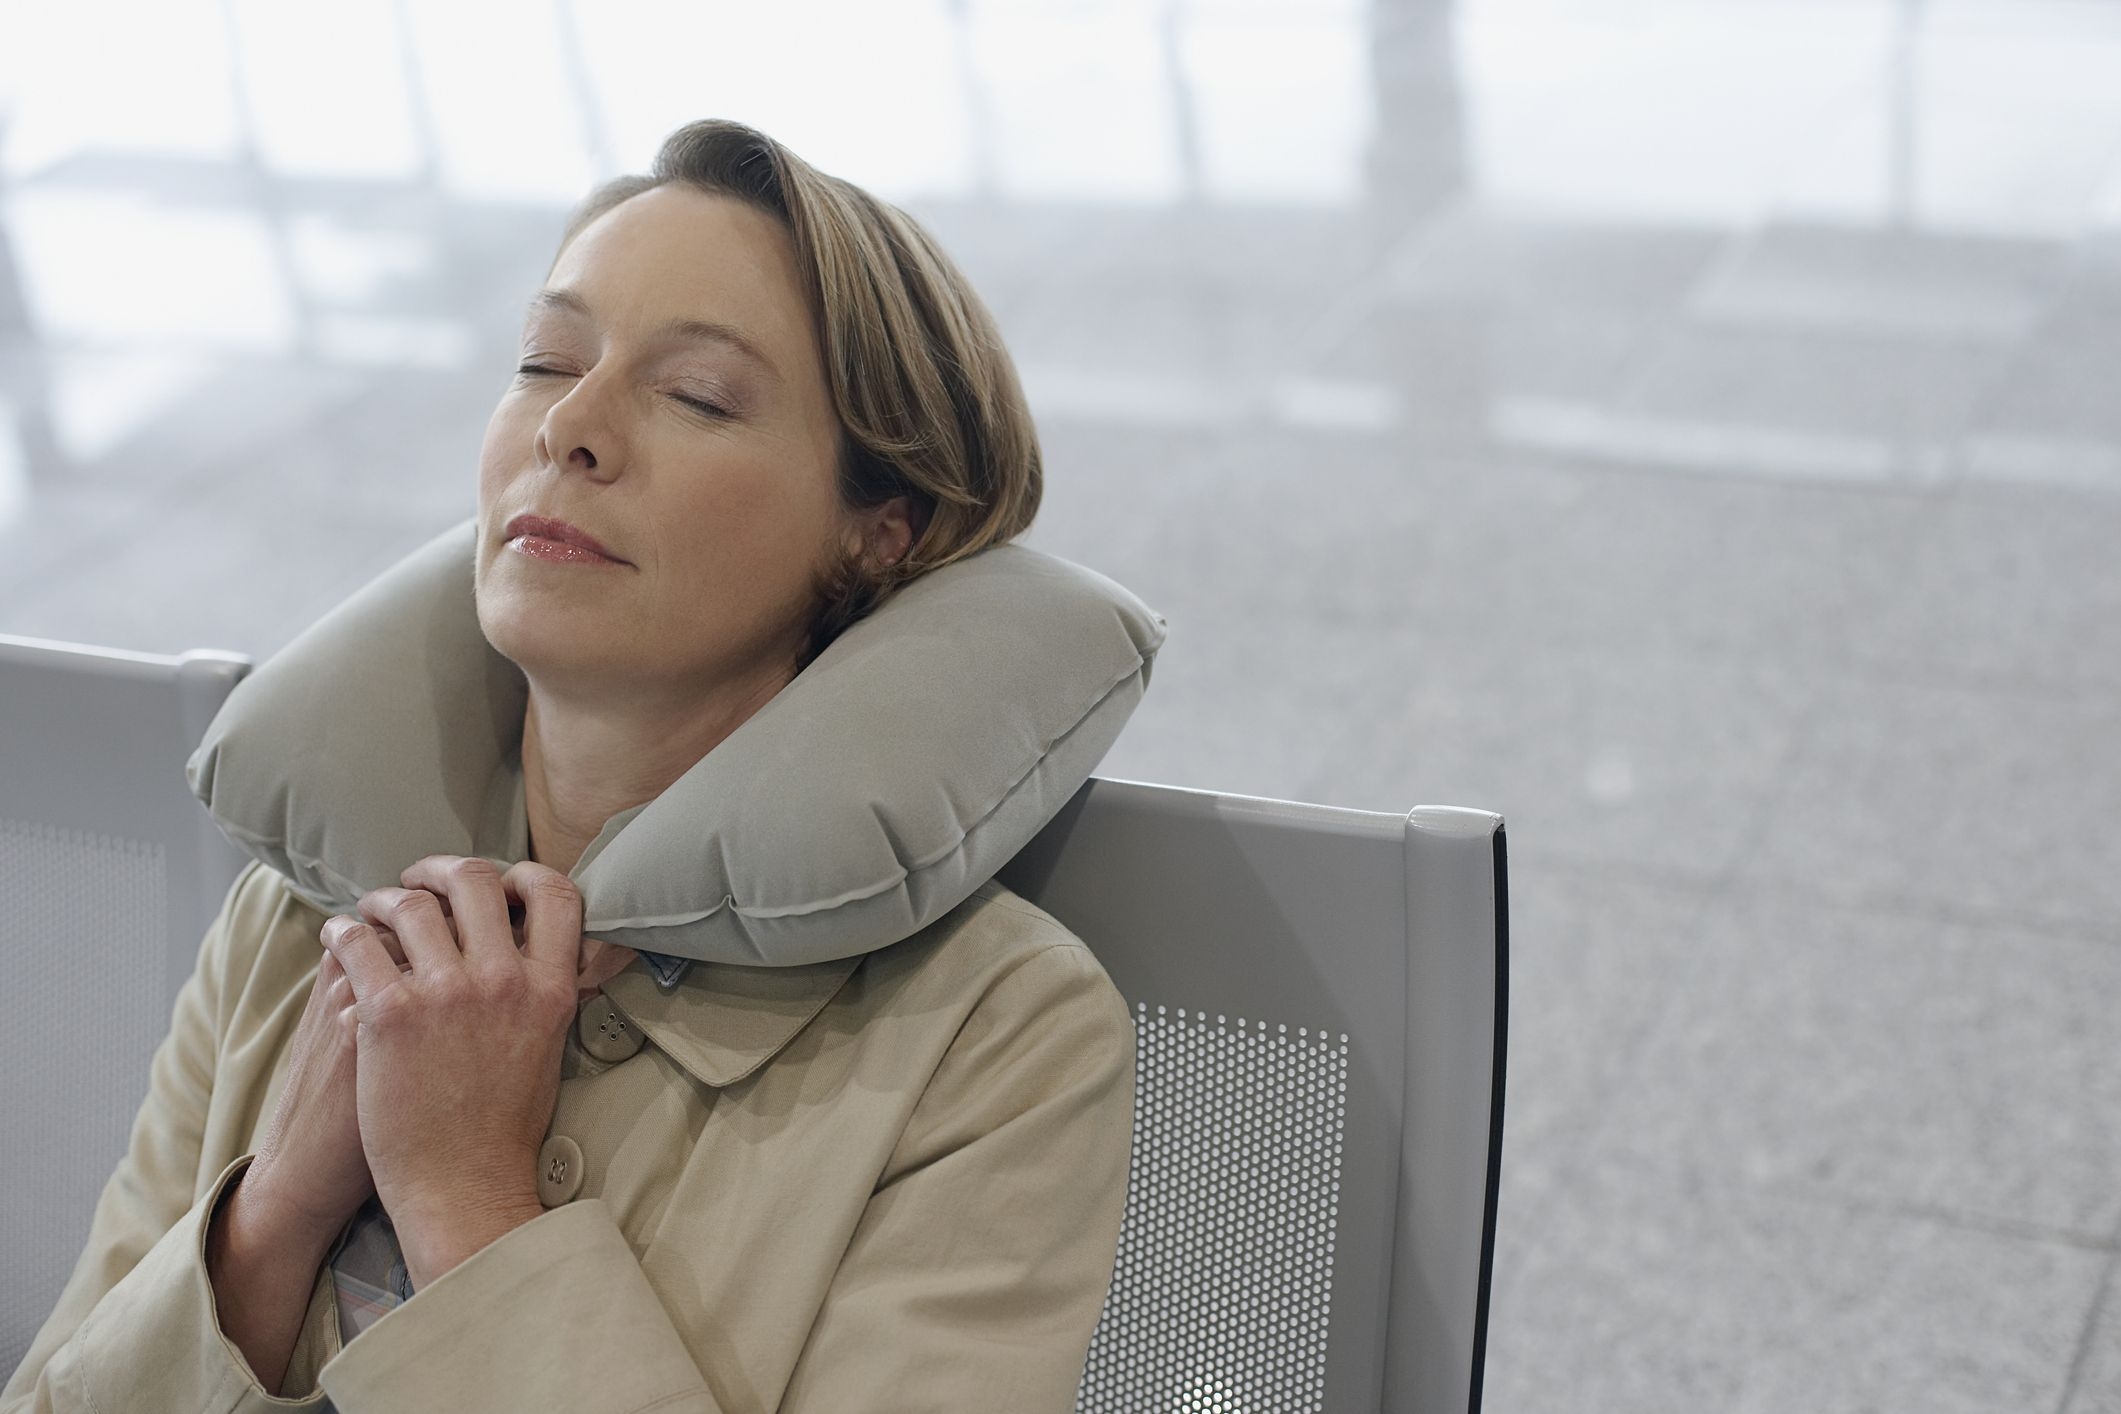 Trtl travel pillow review | the food